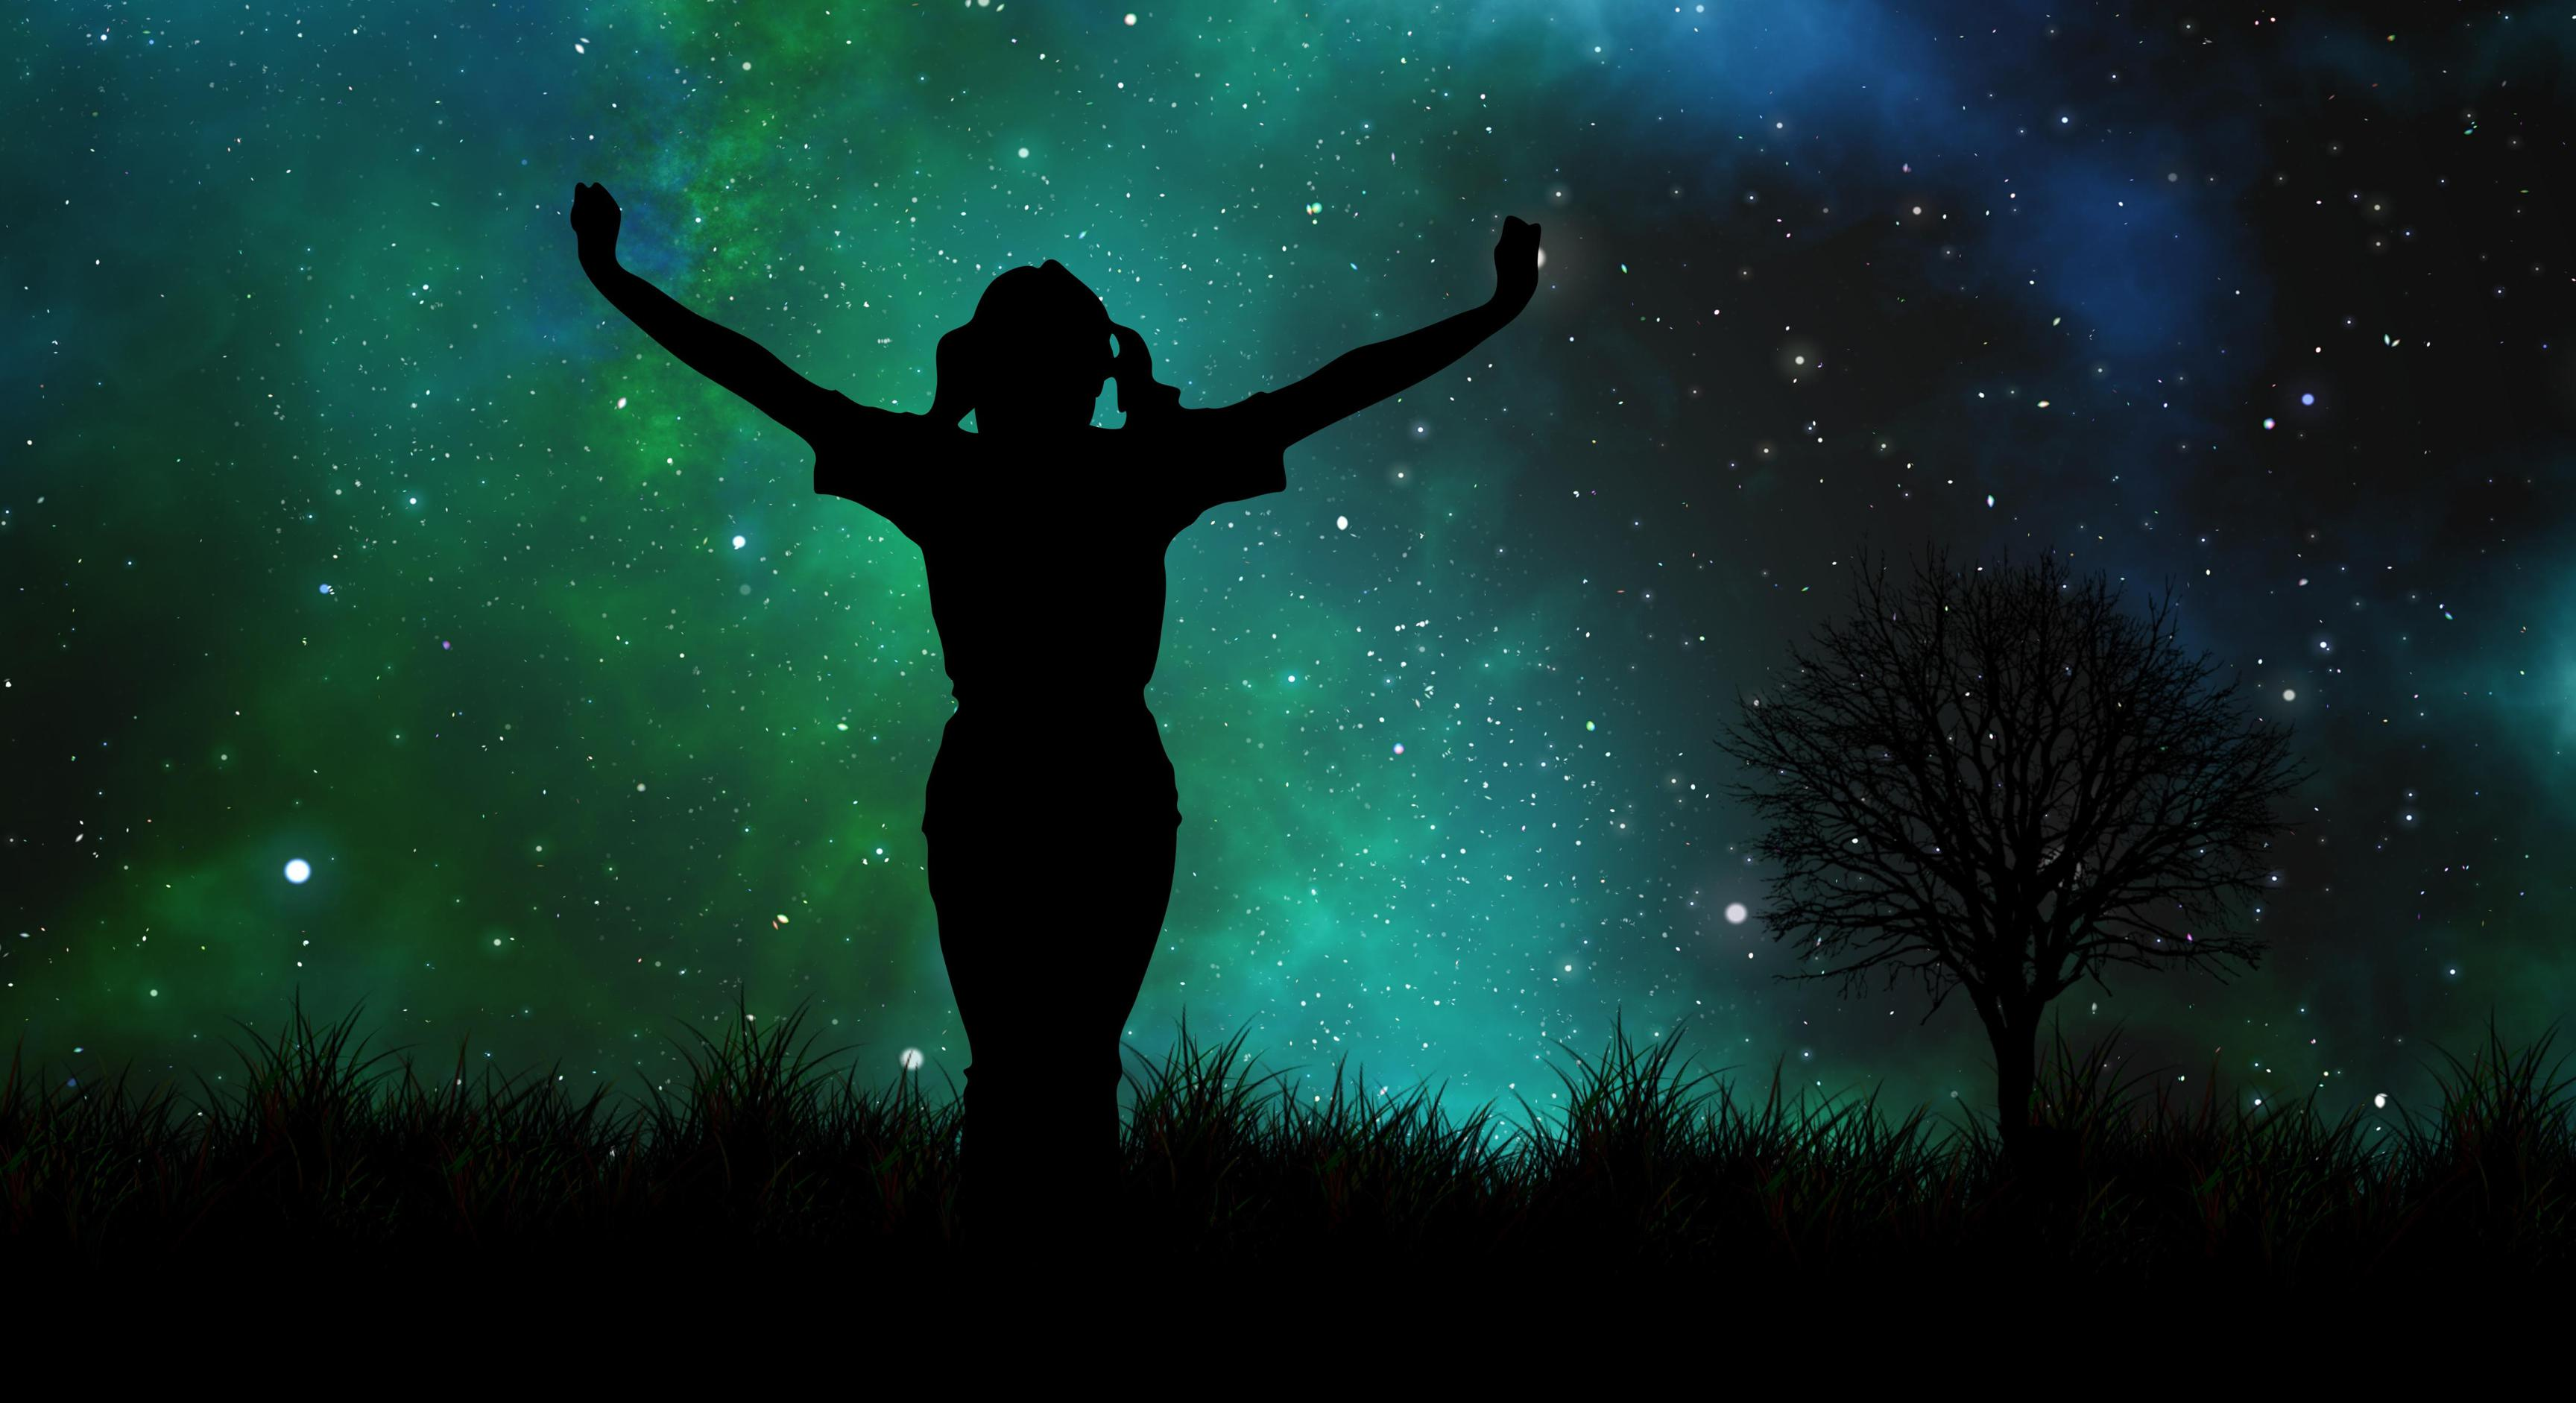 Silhouette of woman standing on hill in front of galaxy backdrop